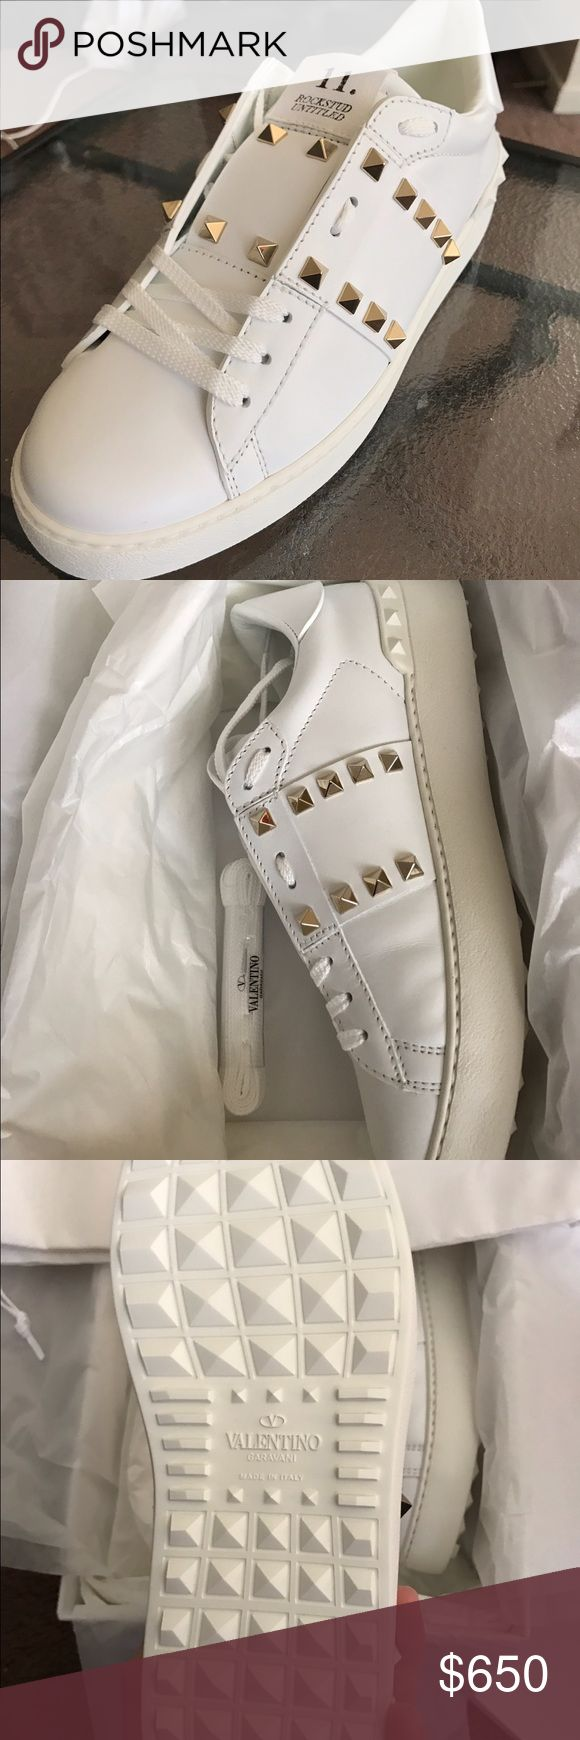 Valentino Garavani Authentic New Sneakers Valentino Stud Sneakers, receipt available upon request white. With box and shoe bag Valentino Garavani Shoes